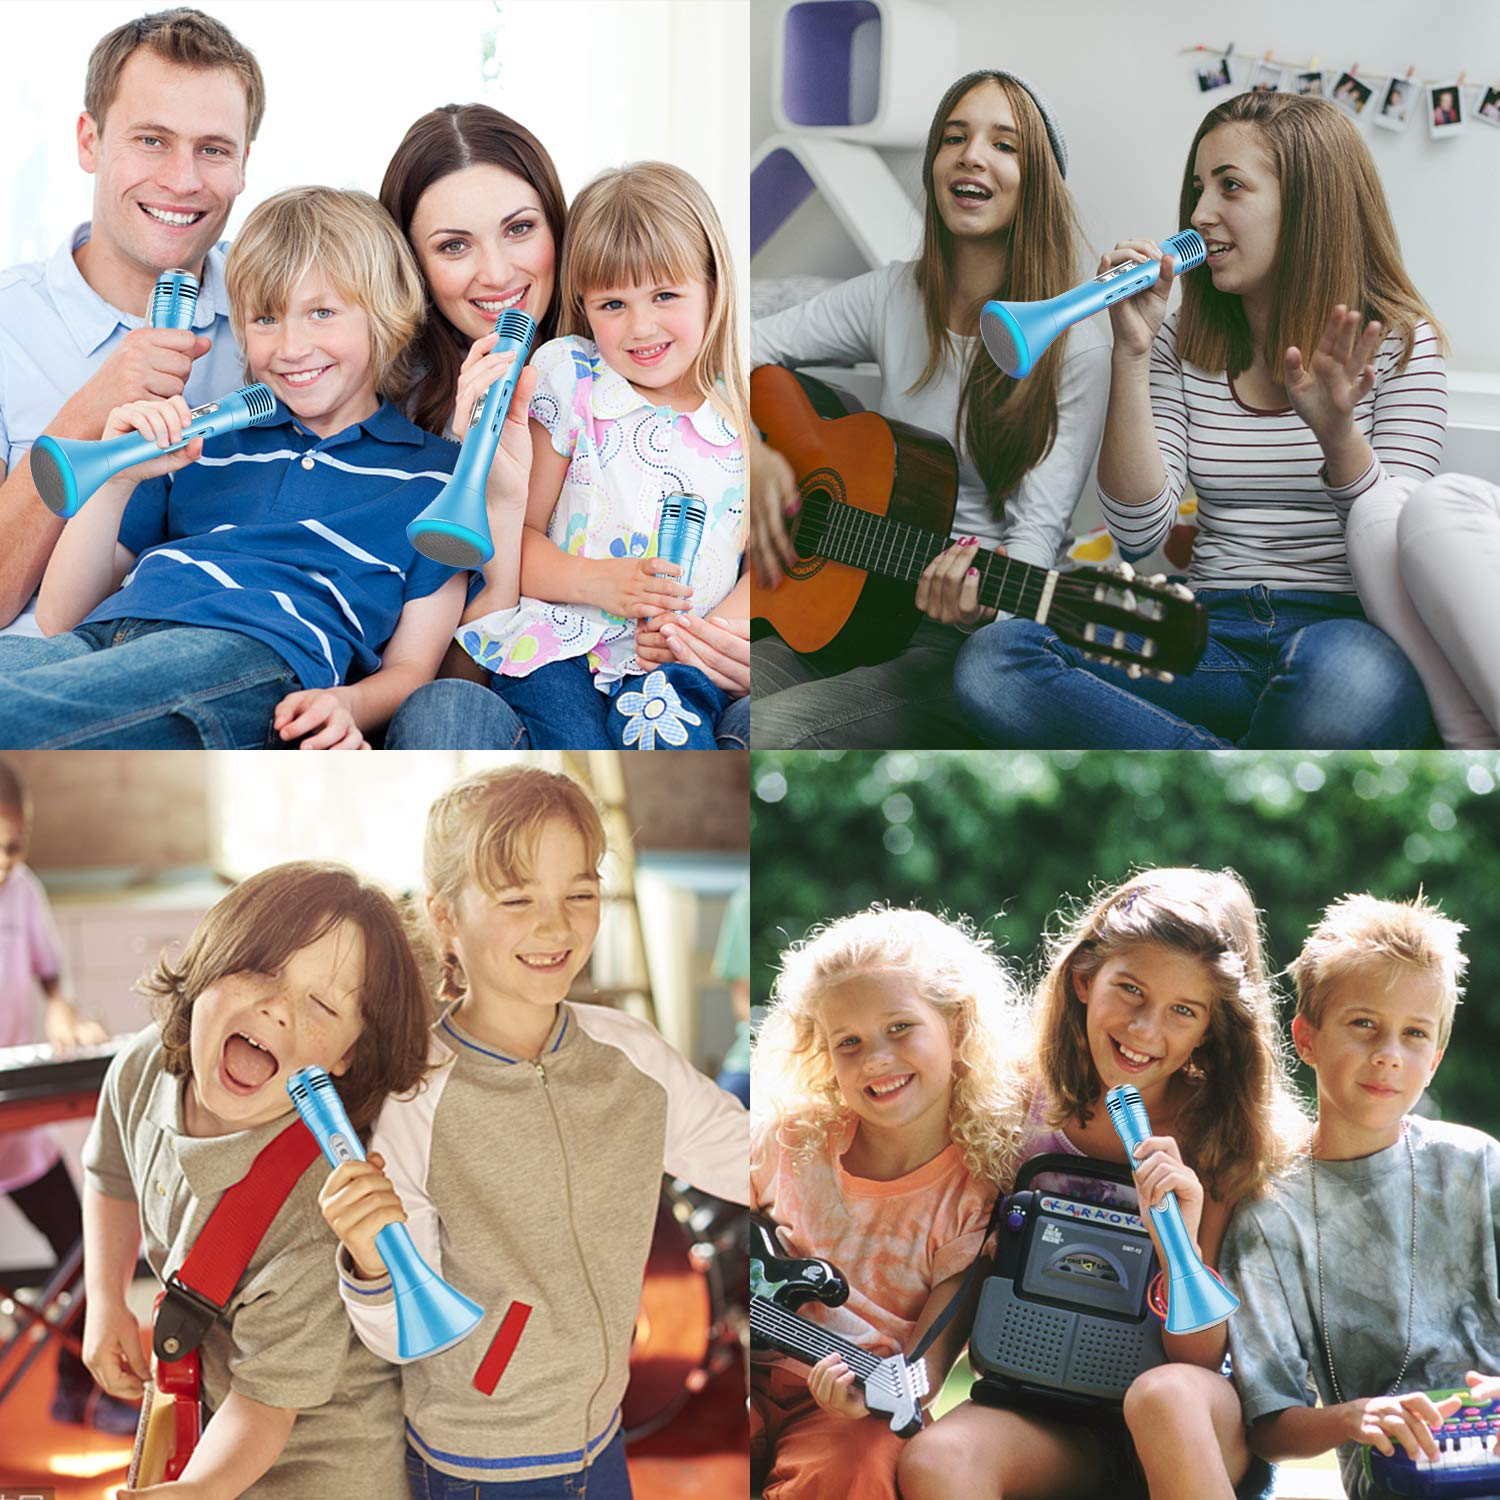 iGeeKid Kids Wireless Karaoke Microphone with Speaker Colorful LED Light for Girls Boys Toddlers Portable Handheld Music Toys for Singing Music Playing Party KTV Support iOS Android [Super Sale] by iGeeKid (Image #7)